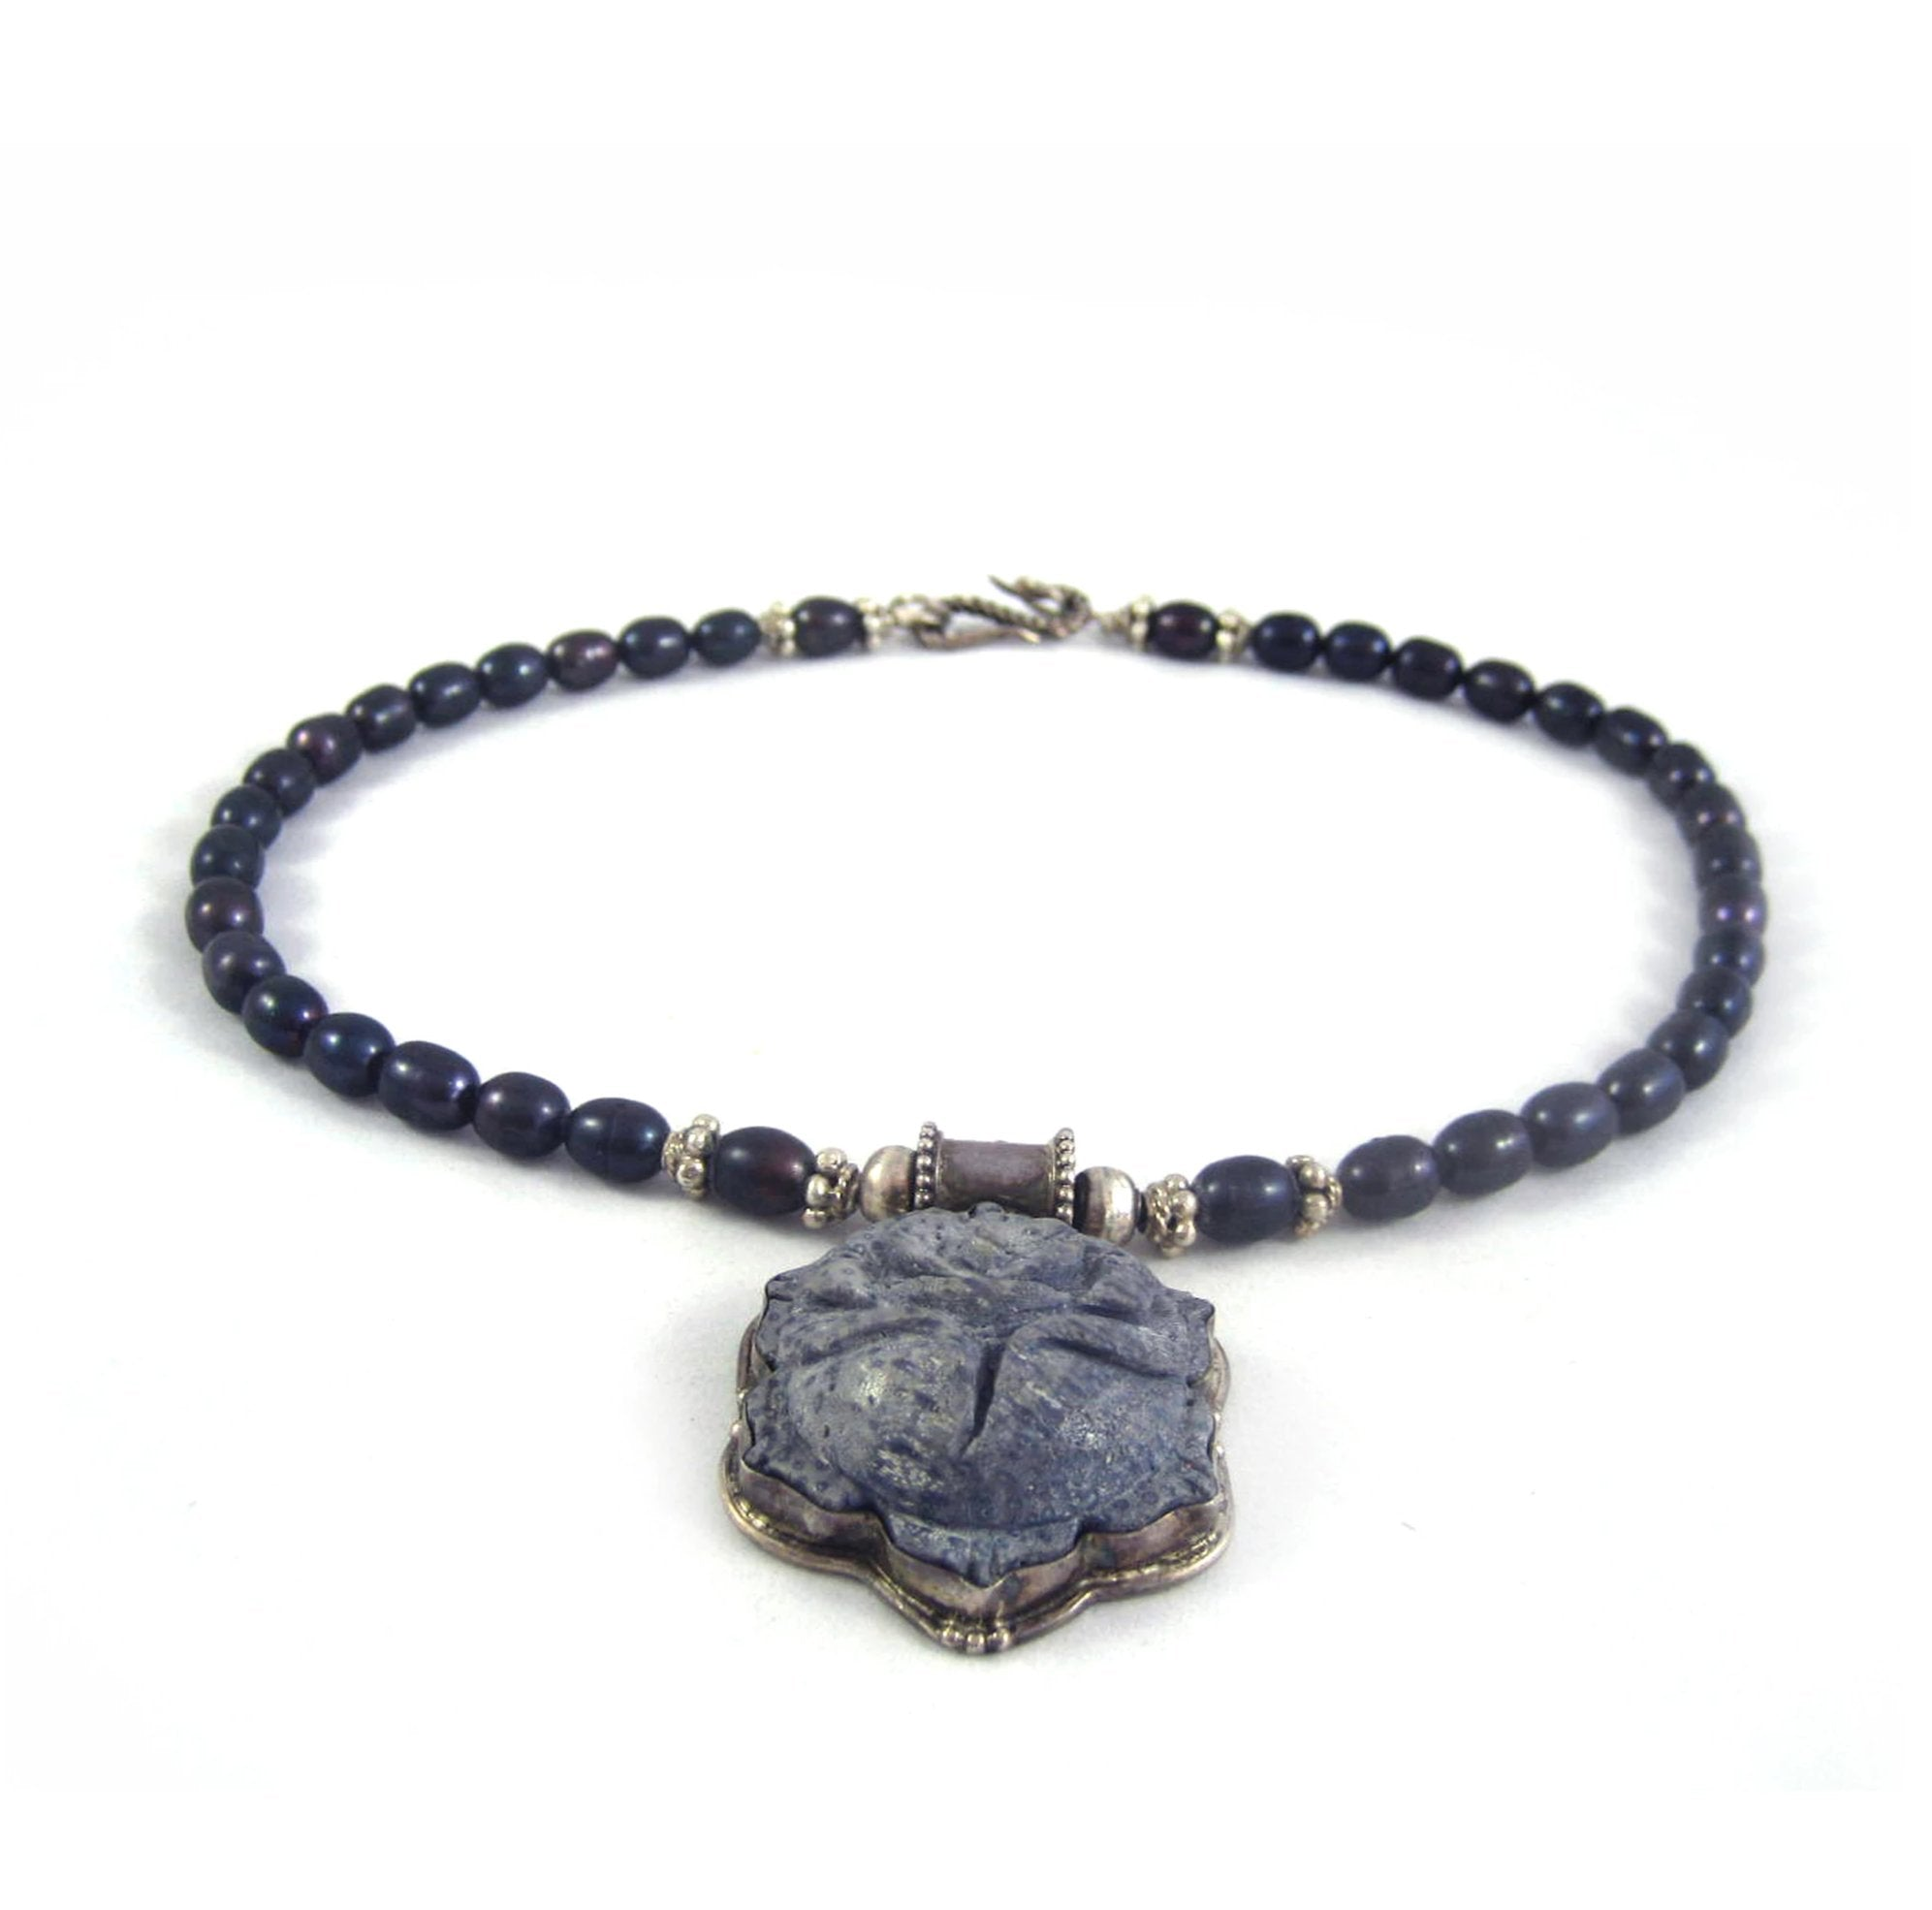 Grey Carved soapstone necklace with dark grey beads, casual necklaces